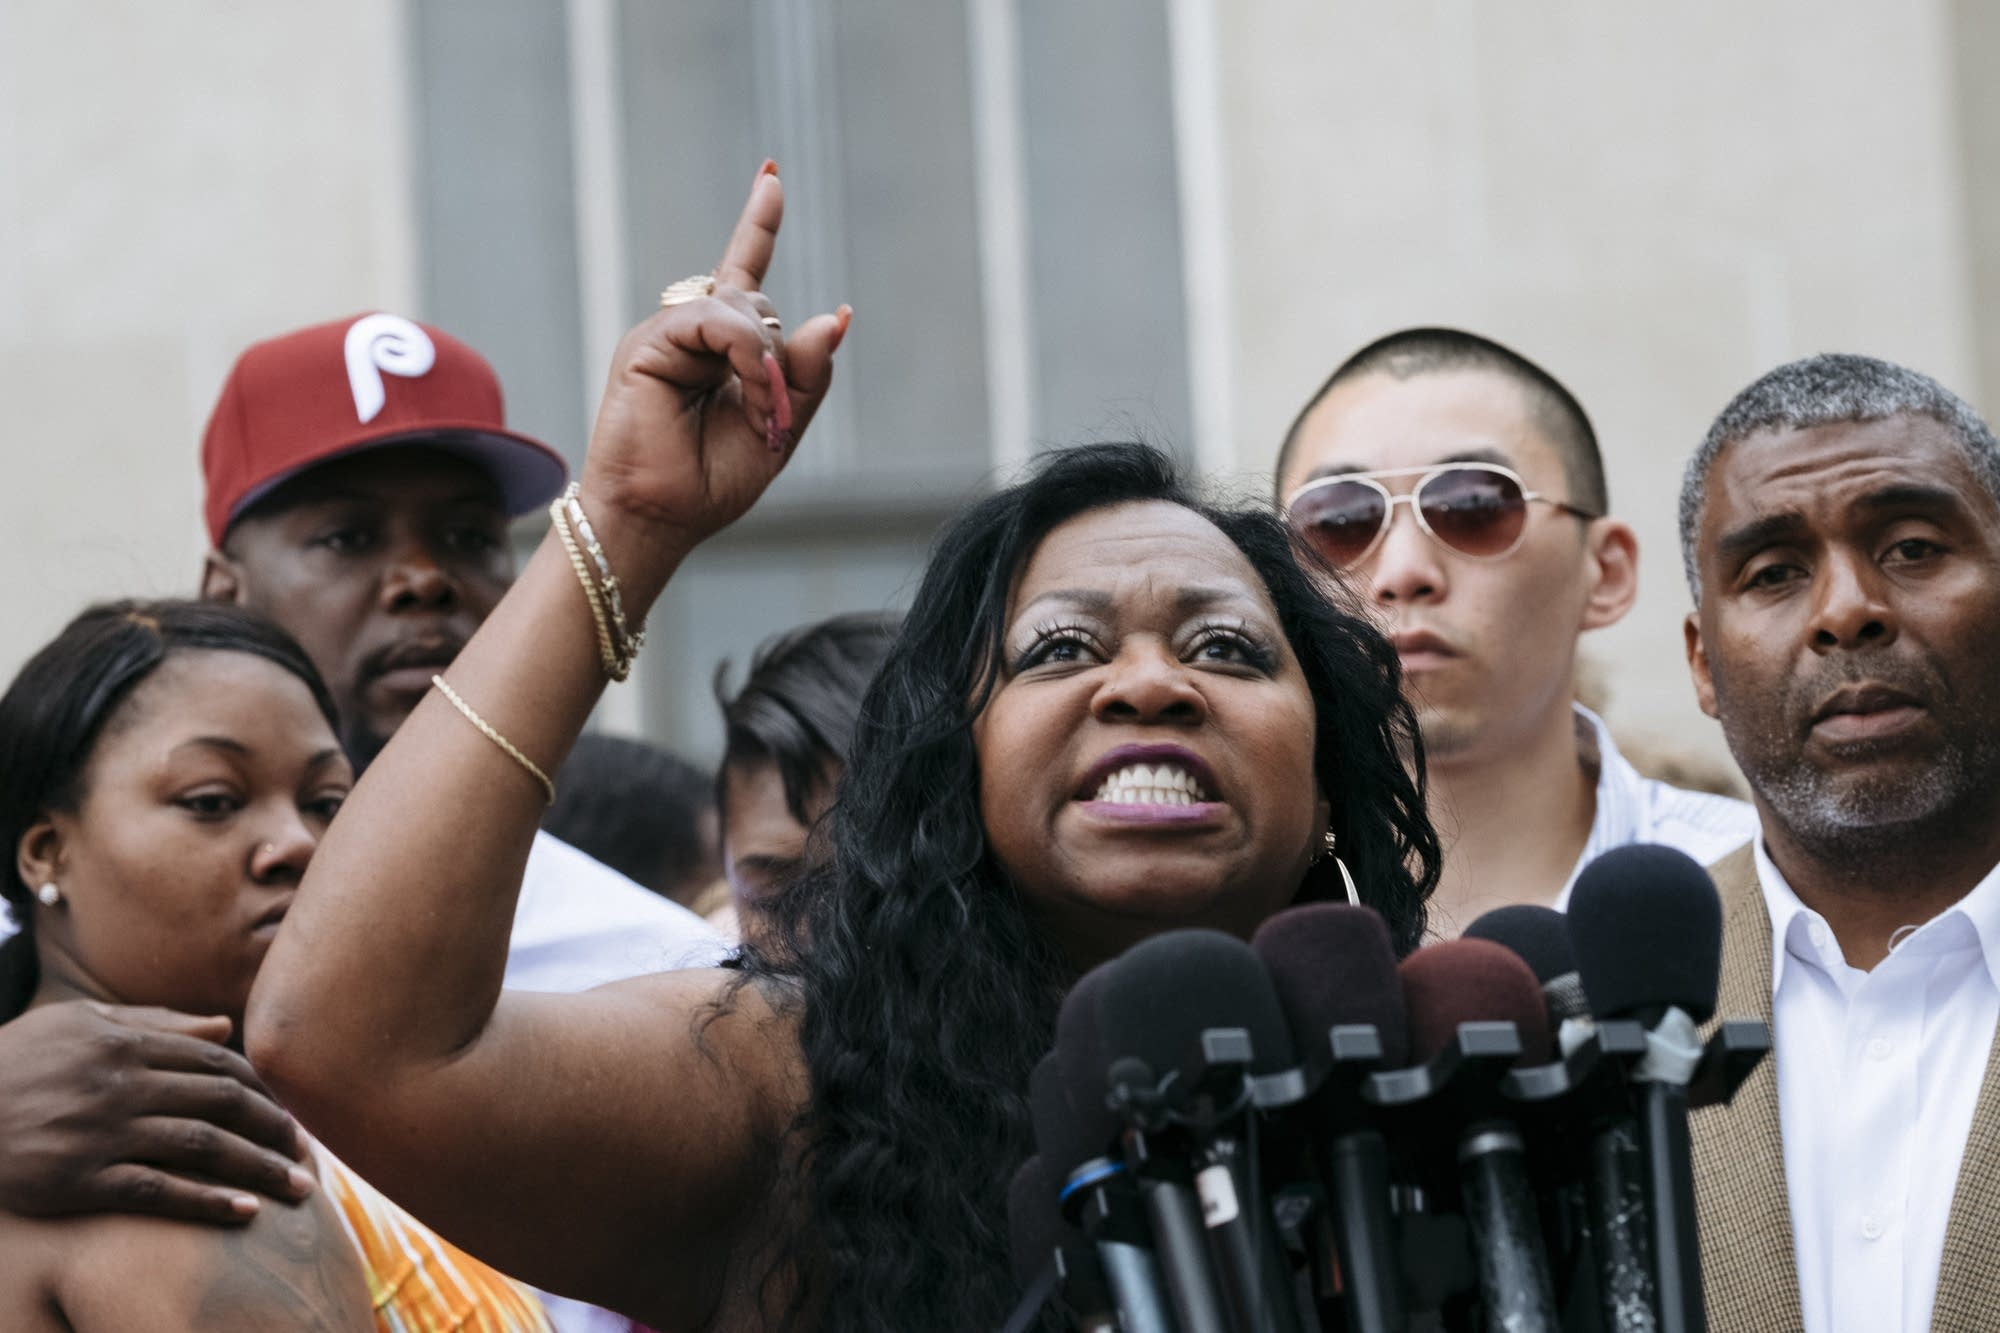 Valerie Castile speaks to the press after the trial verdict.